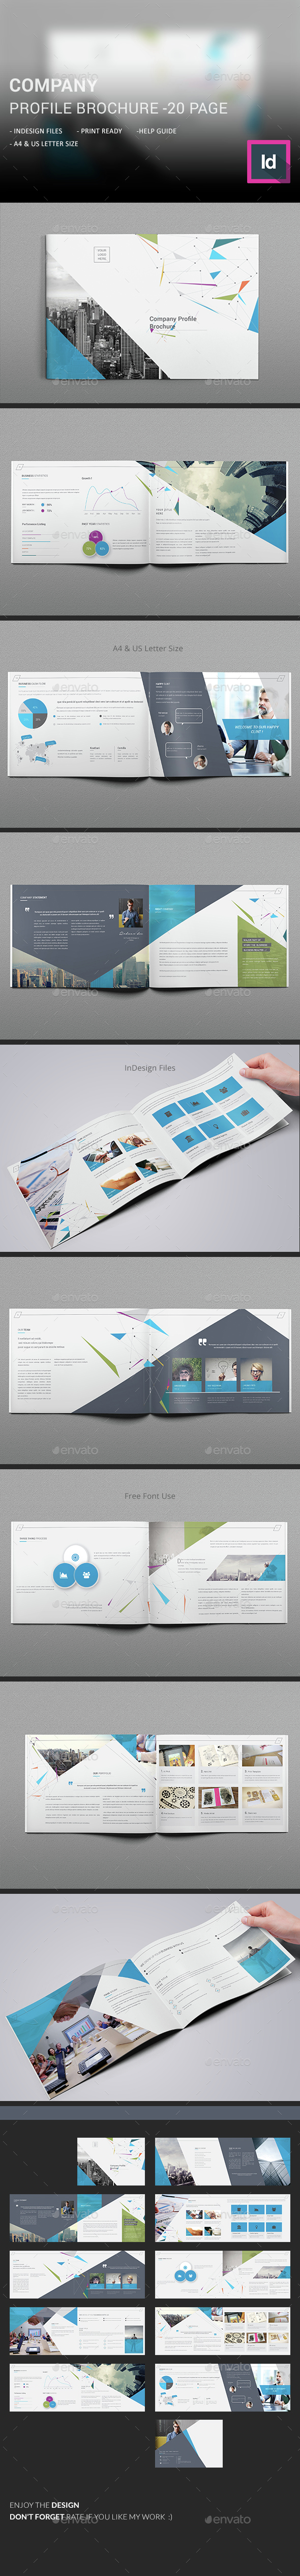 Company Profile Brochure - Corporate Brochures